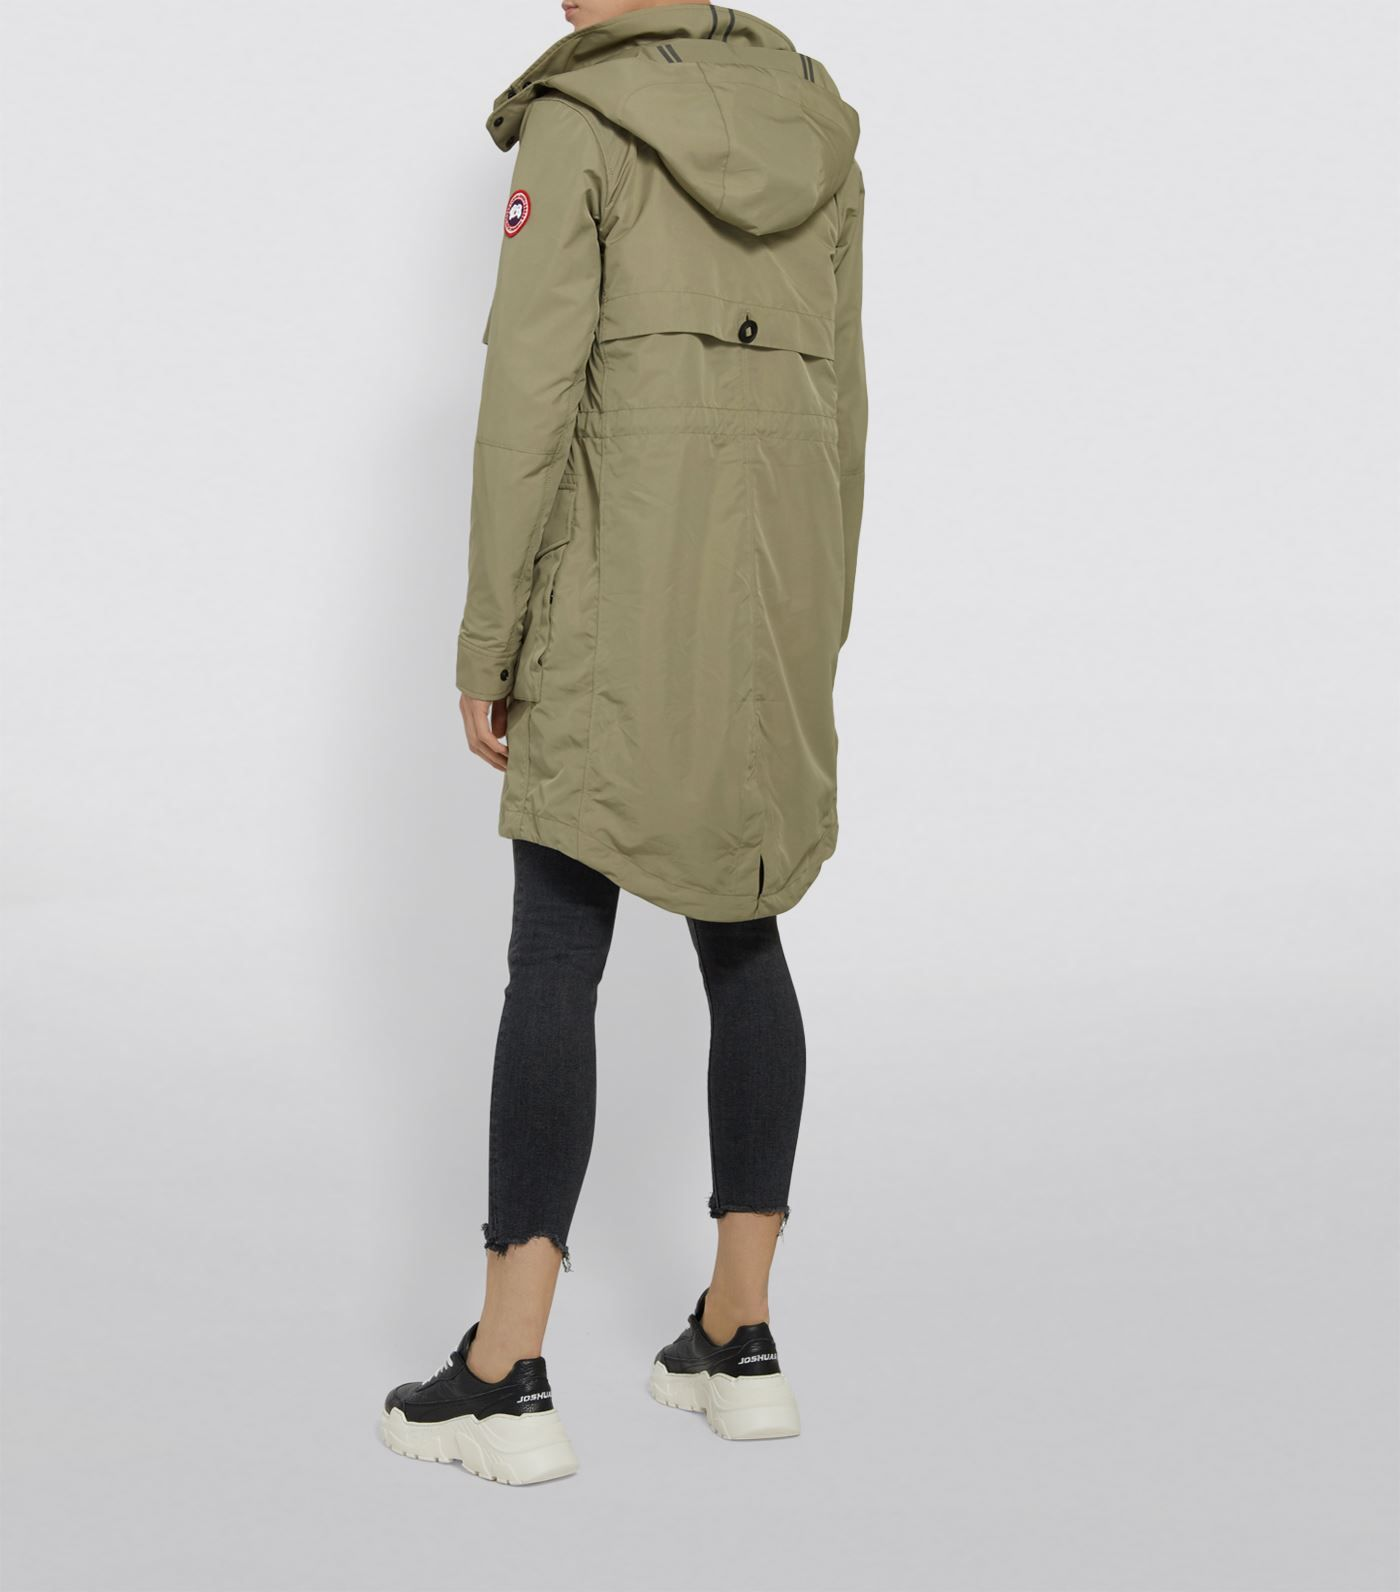 845461a65a8 Cavalry Trench Coat in 2019 | Coat | Coat, Military jacket, Trench